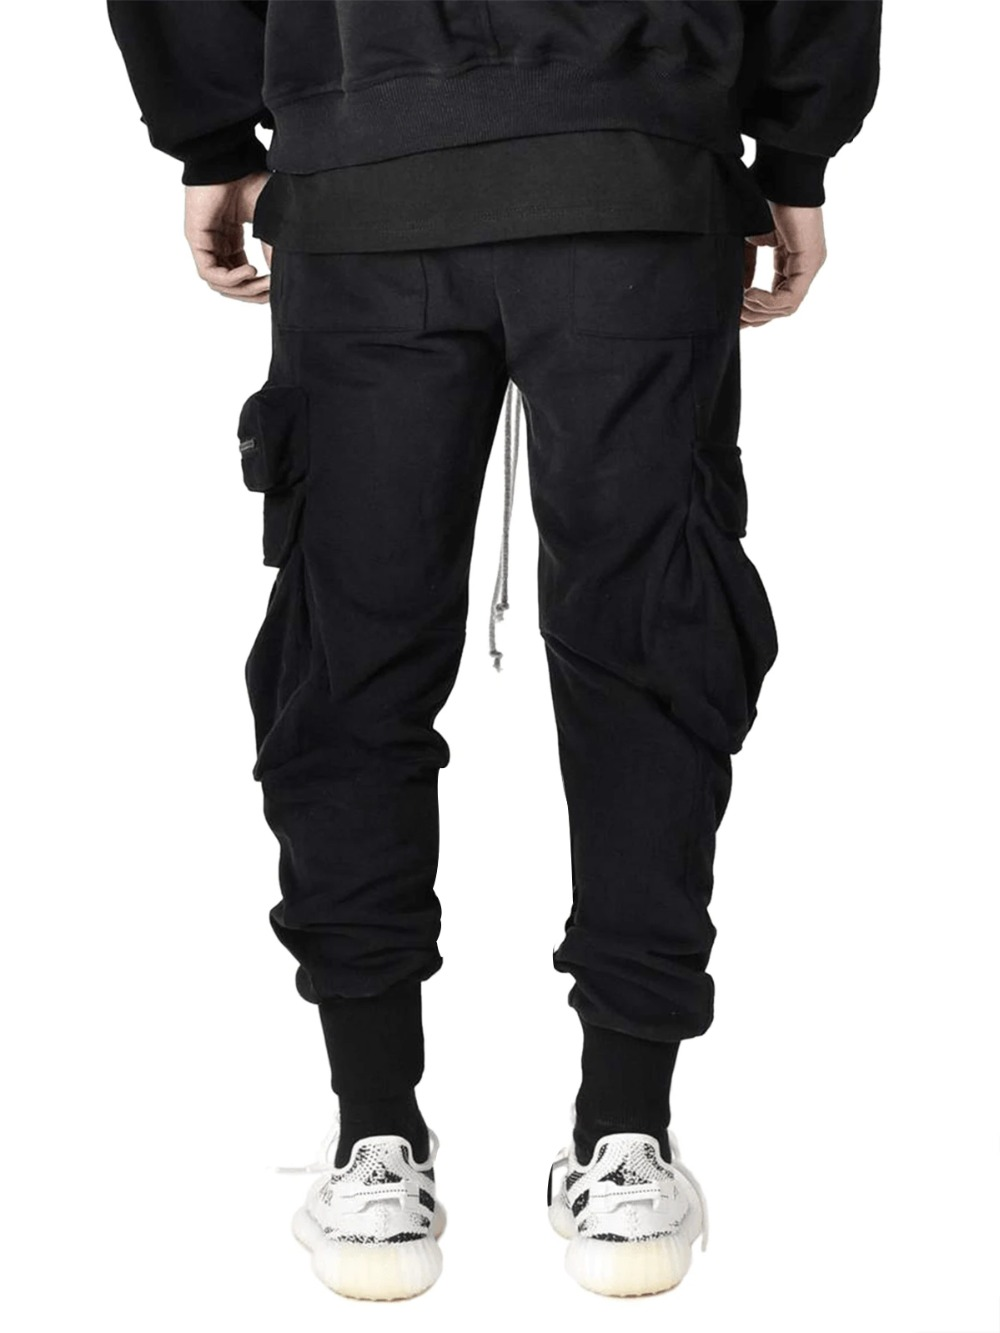 cargosweatpants-black_back_1200x1600